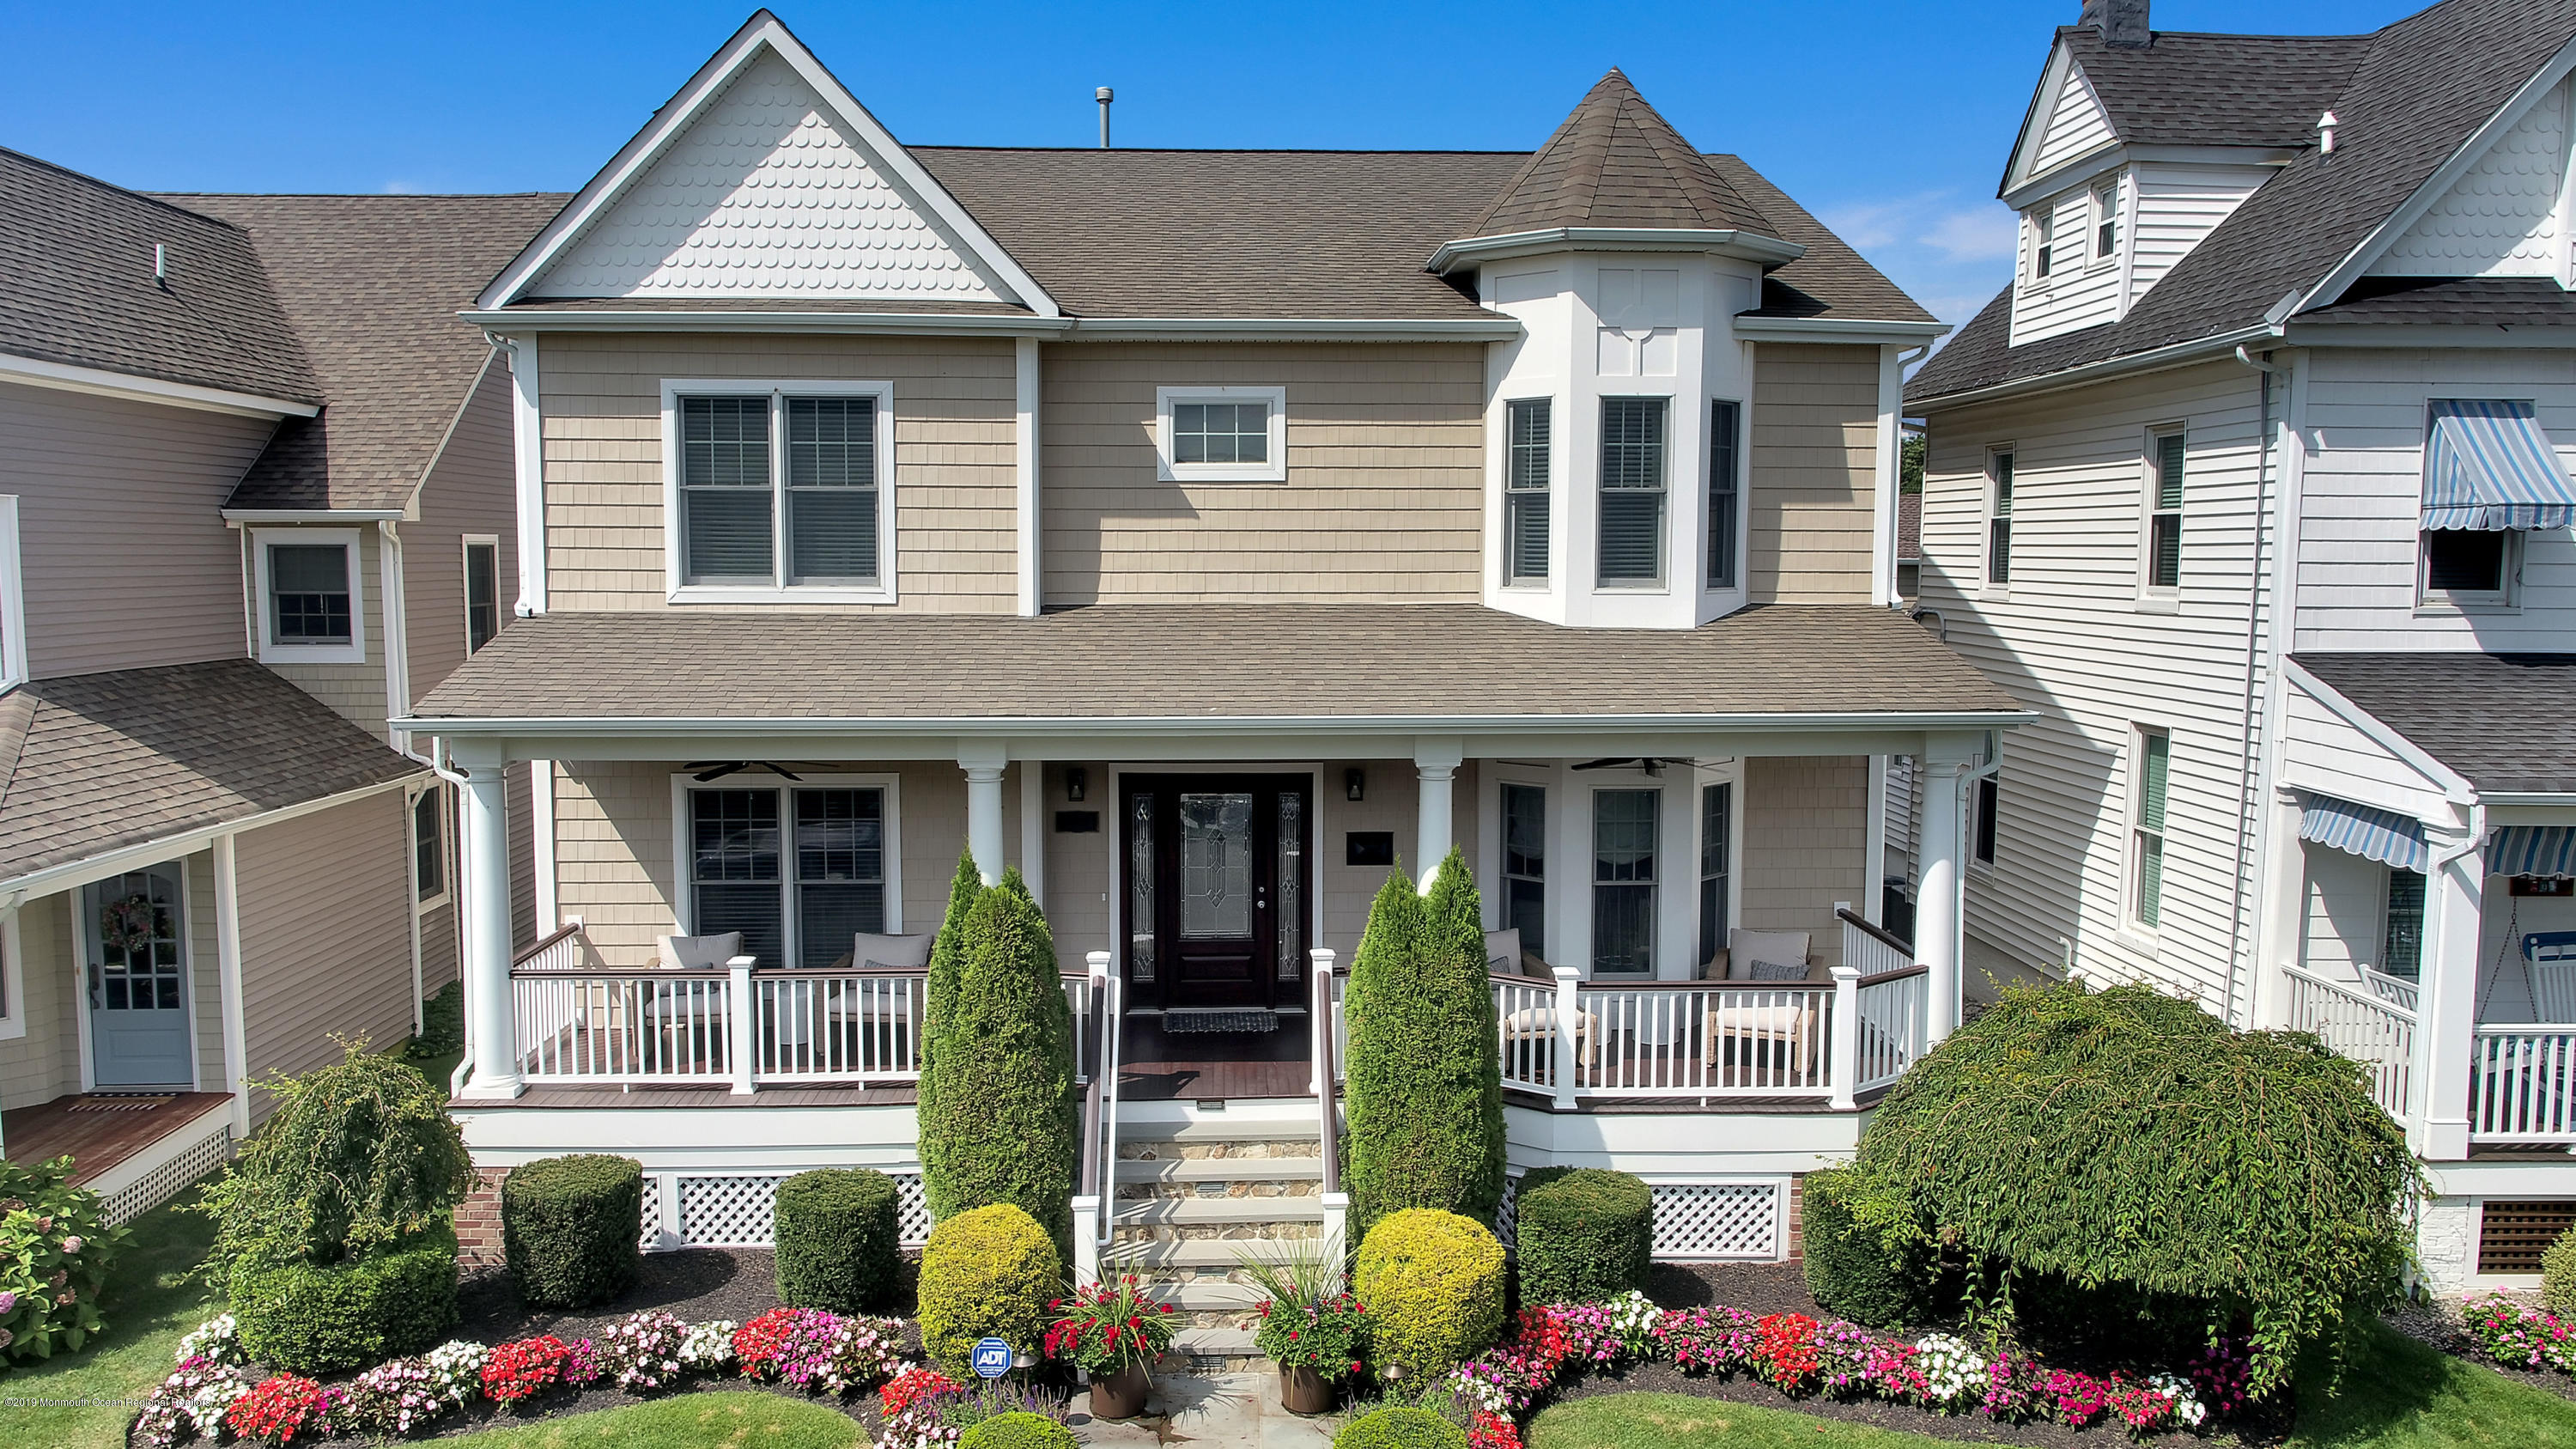 Photo of 306 Sylvania Avenue, Avon-by-the-sea, NJ 07717